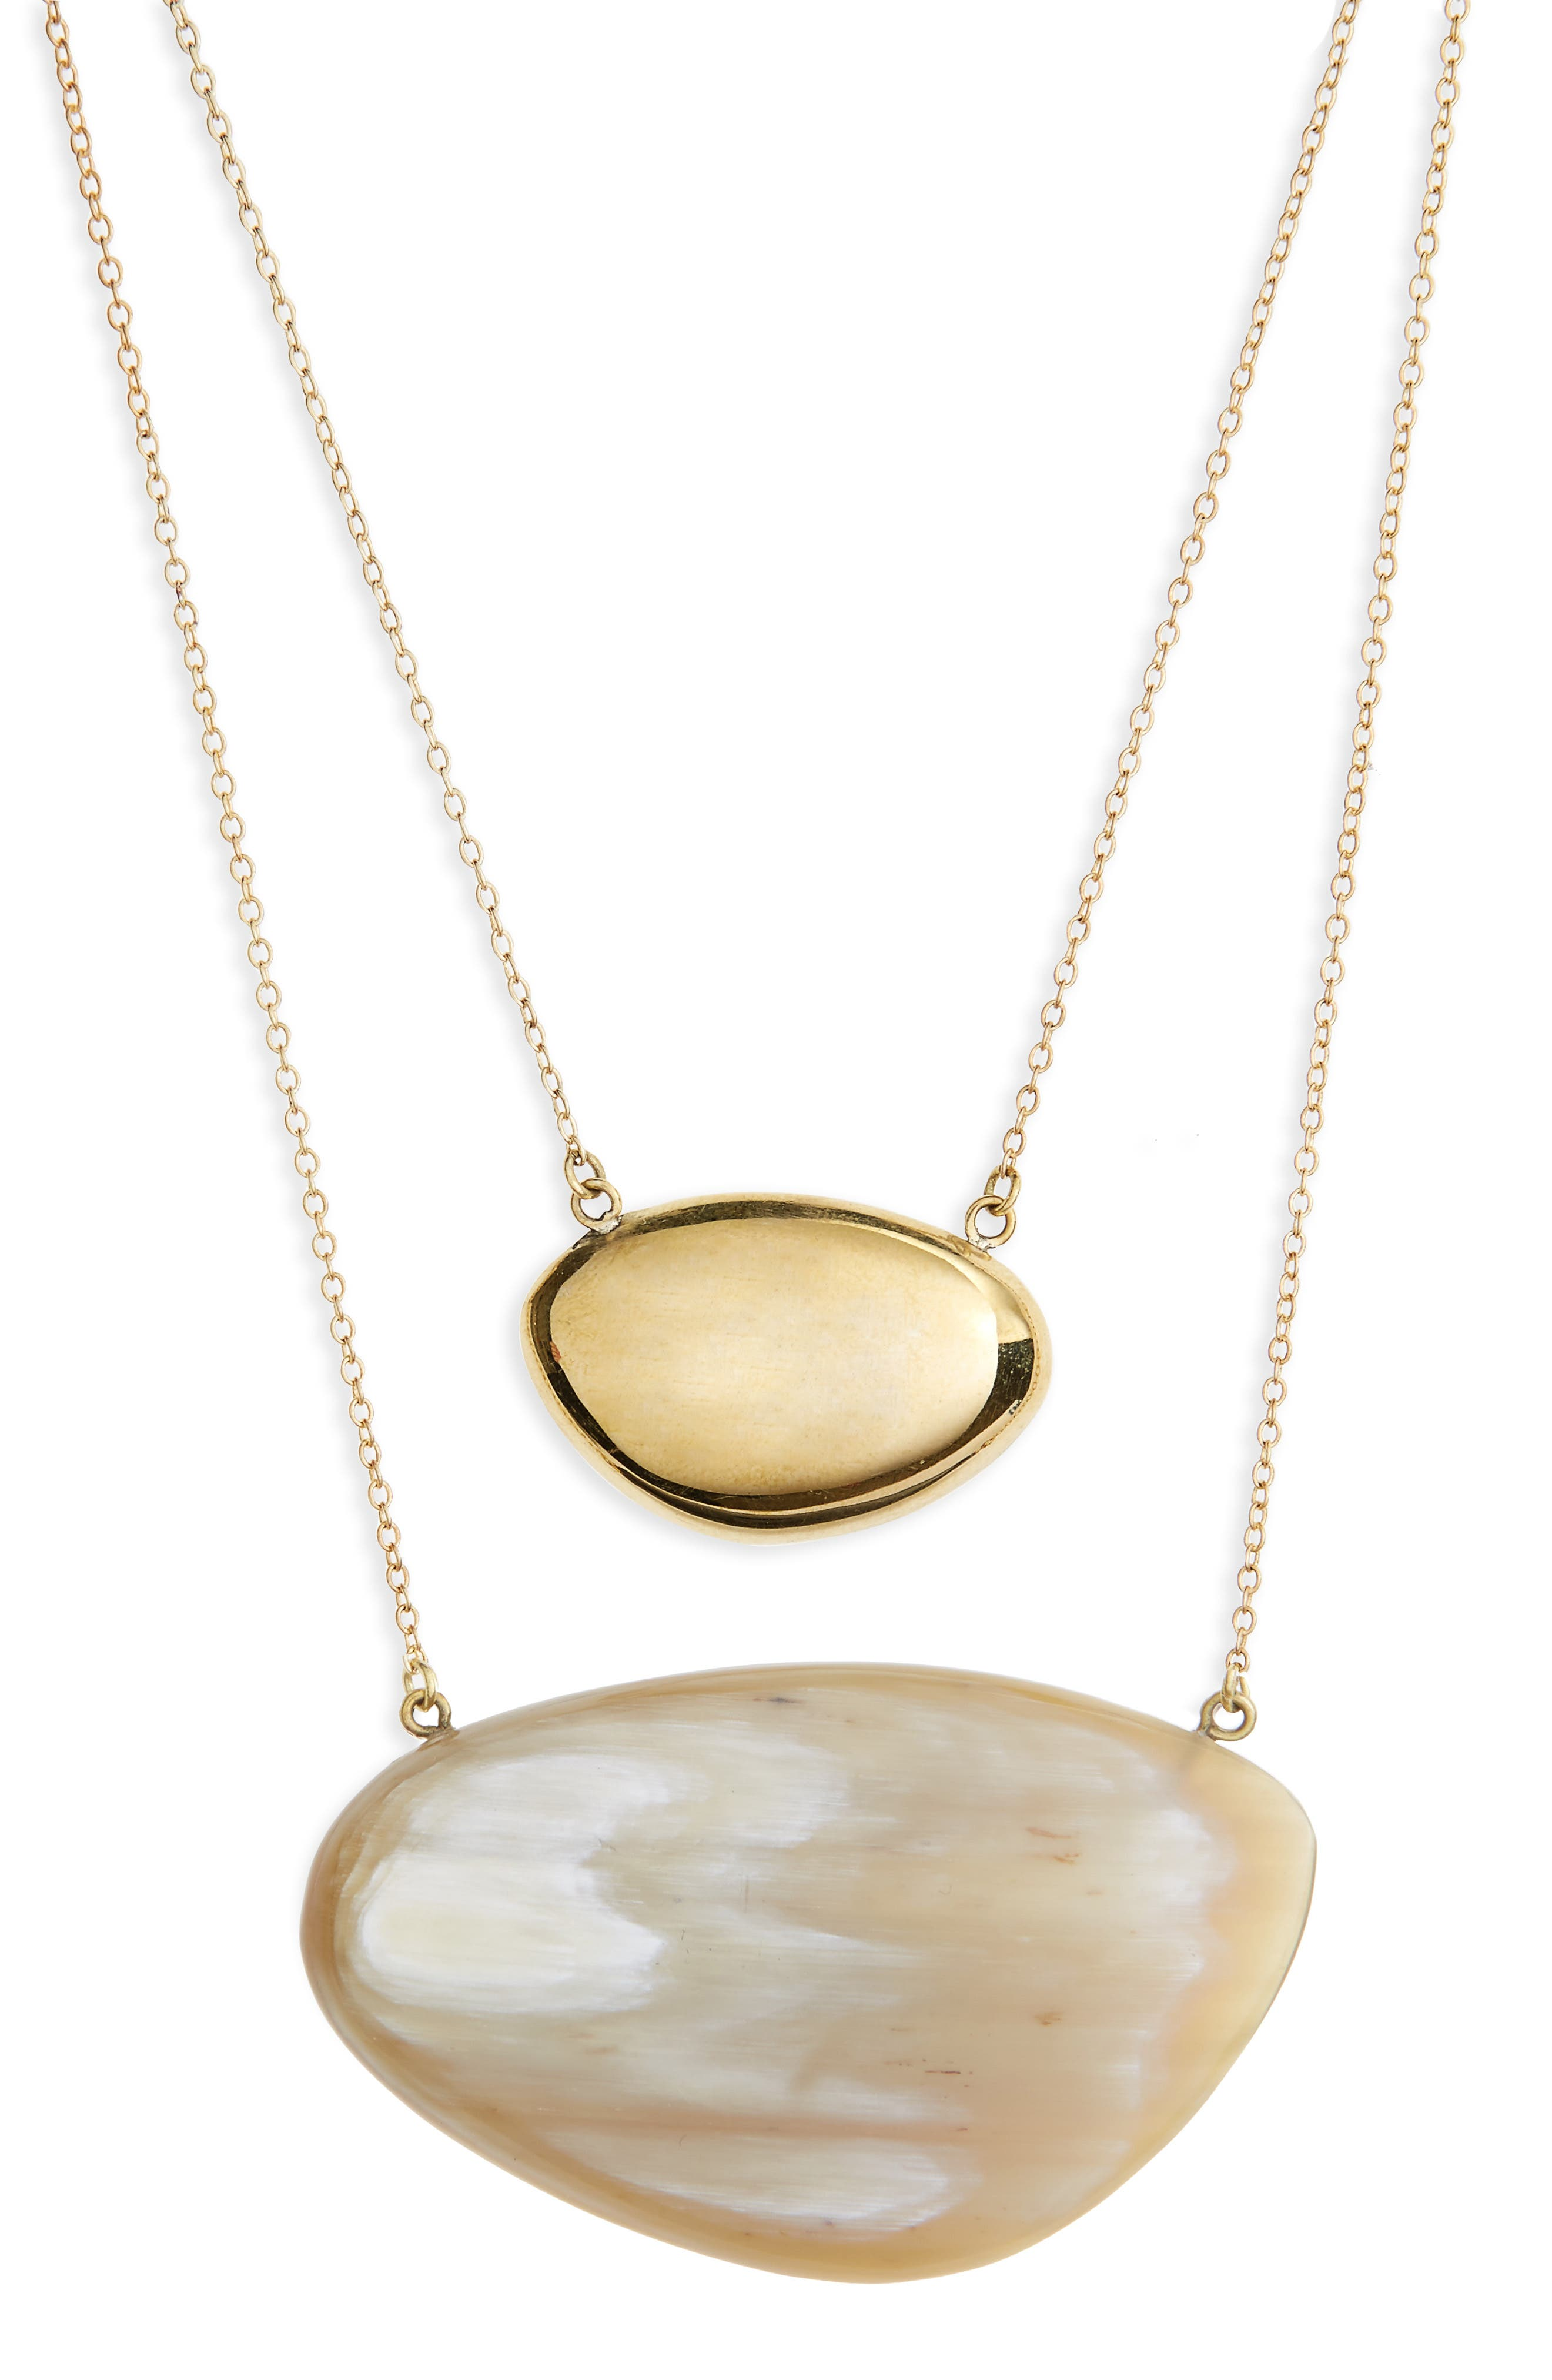 Sabi Layered Necklace,                         Main,                         color, Brass And Natural